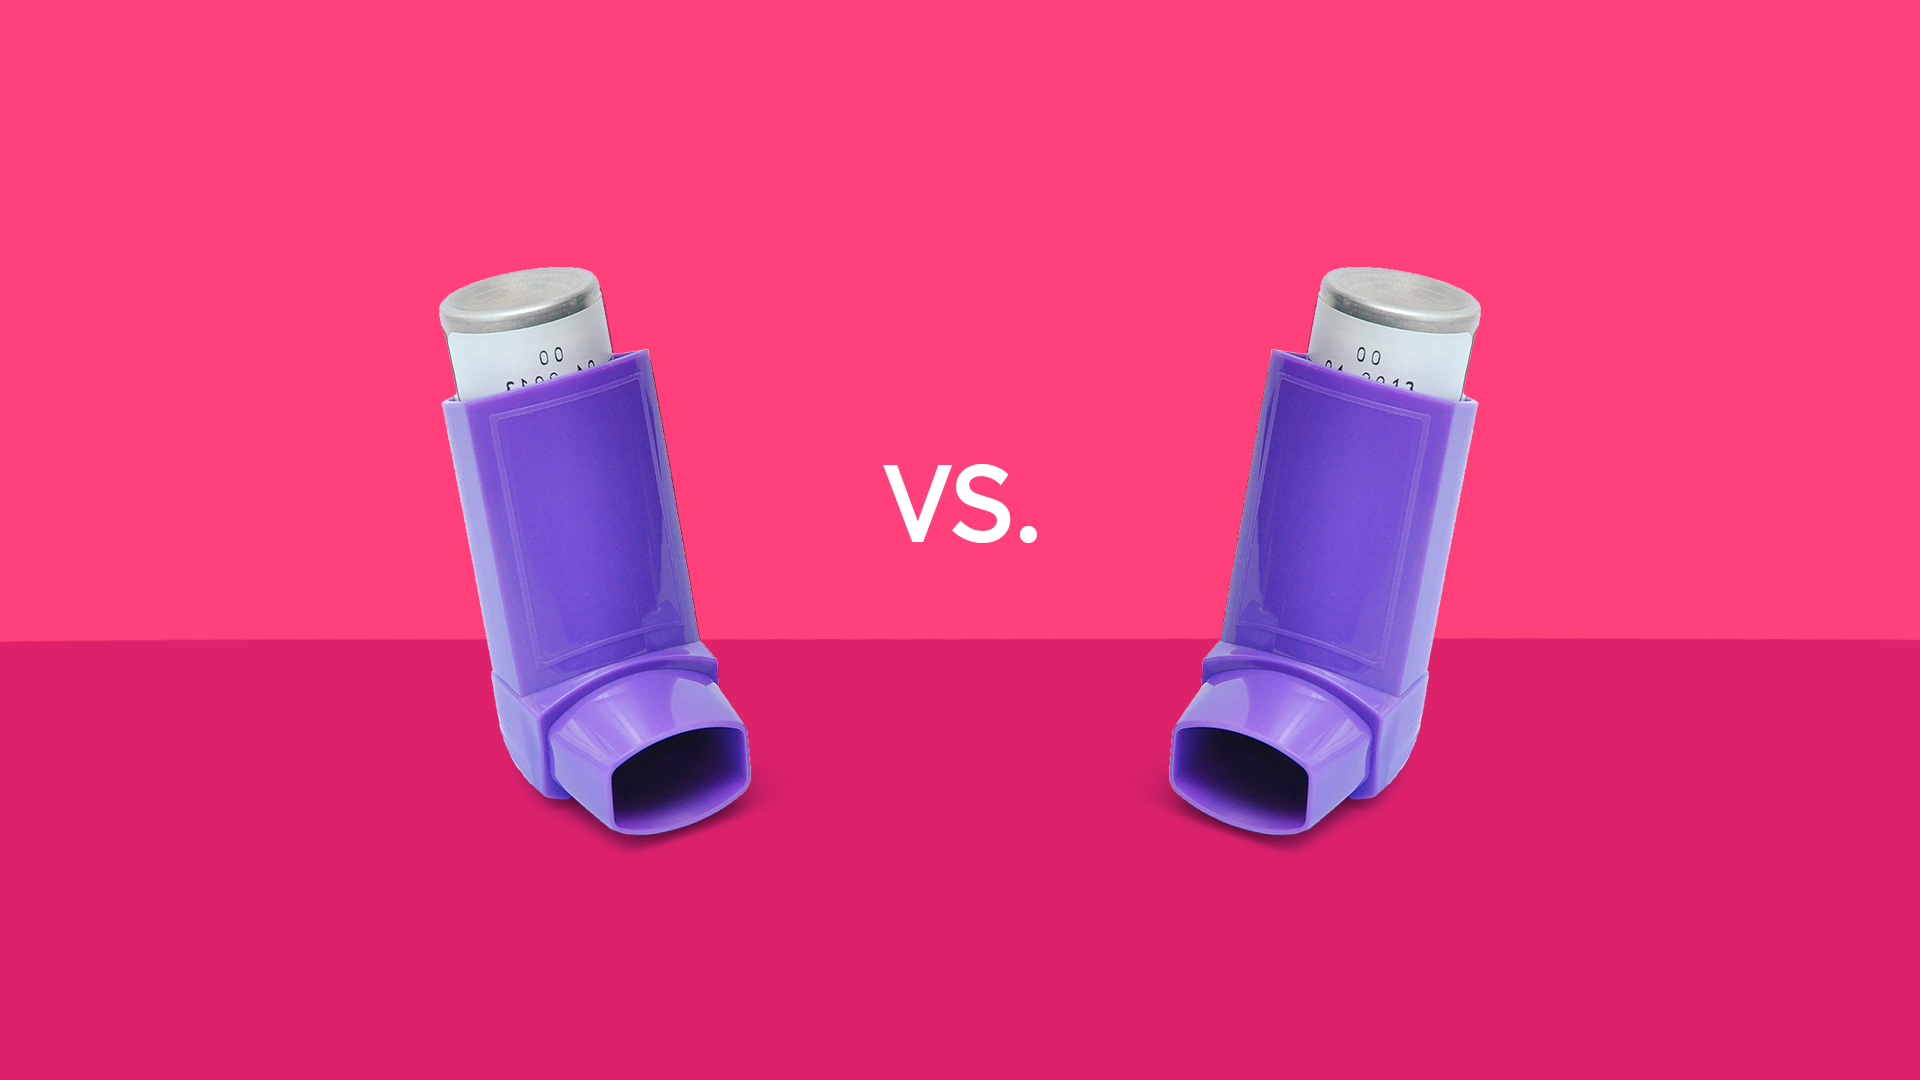 Breo Vs Advair Differences Similarities And Which Is Better For You